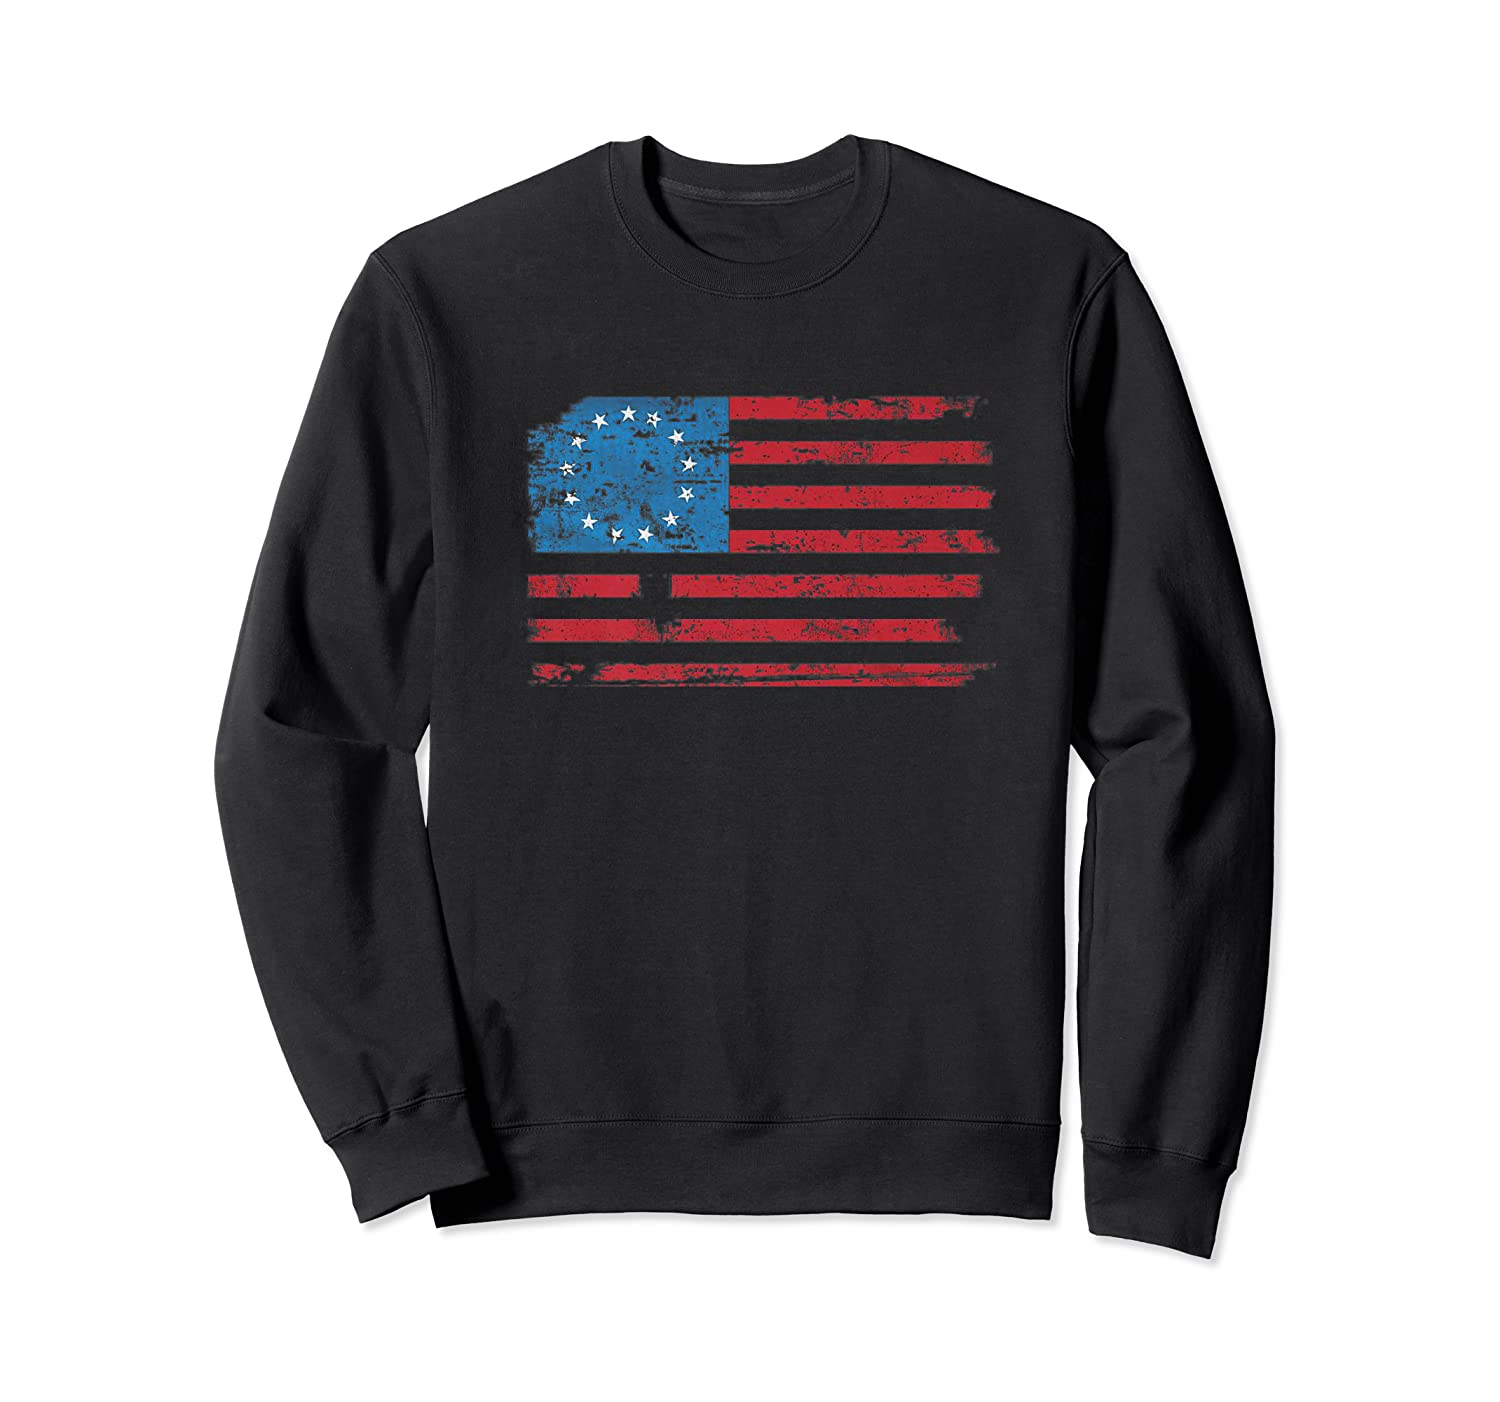 Distressed Betsy Ross Us American Flag Shirt For 4th Of July Premium T-shirt Crewneck Sweater